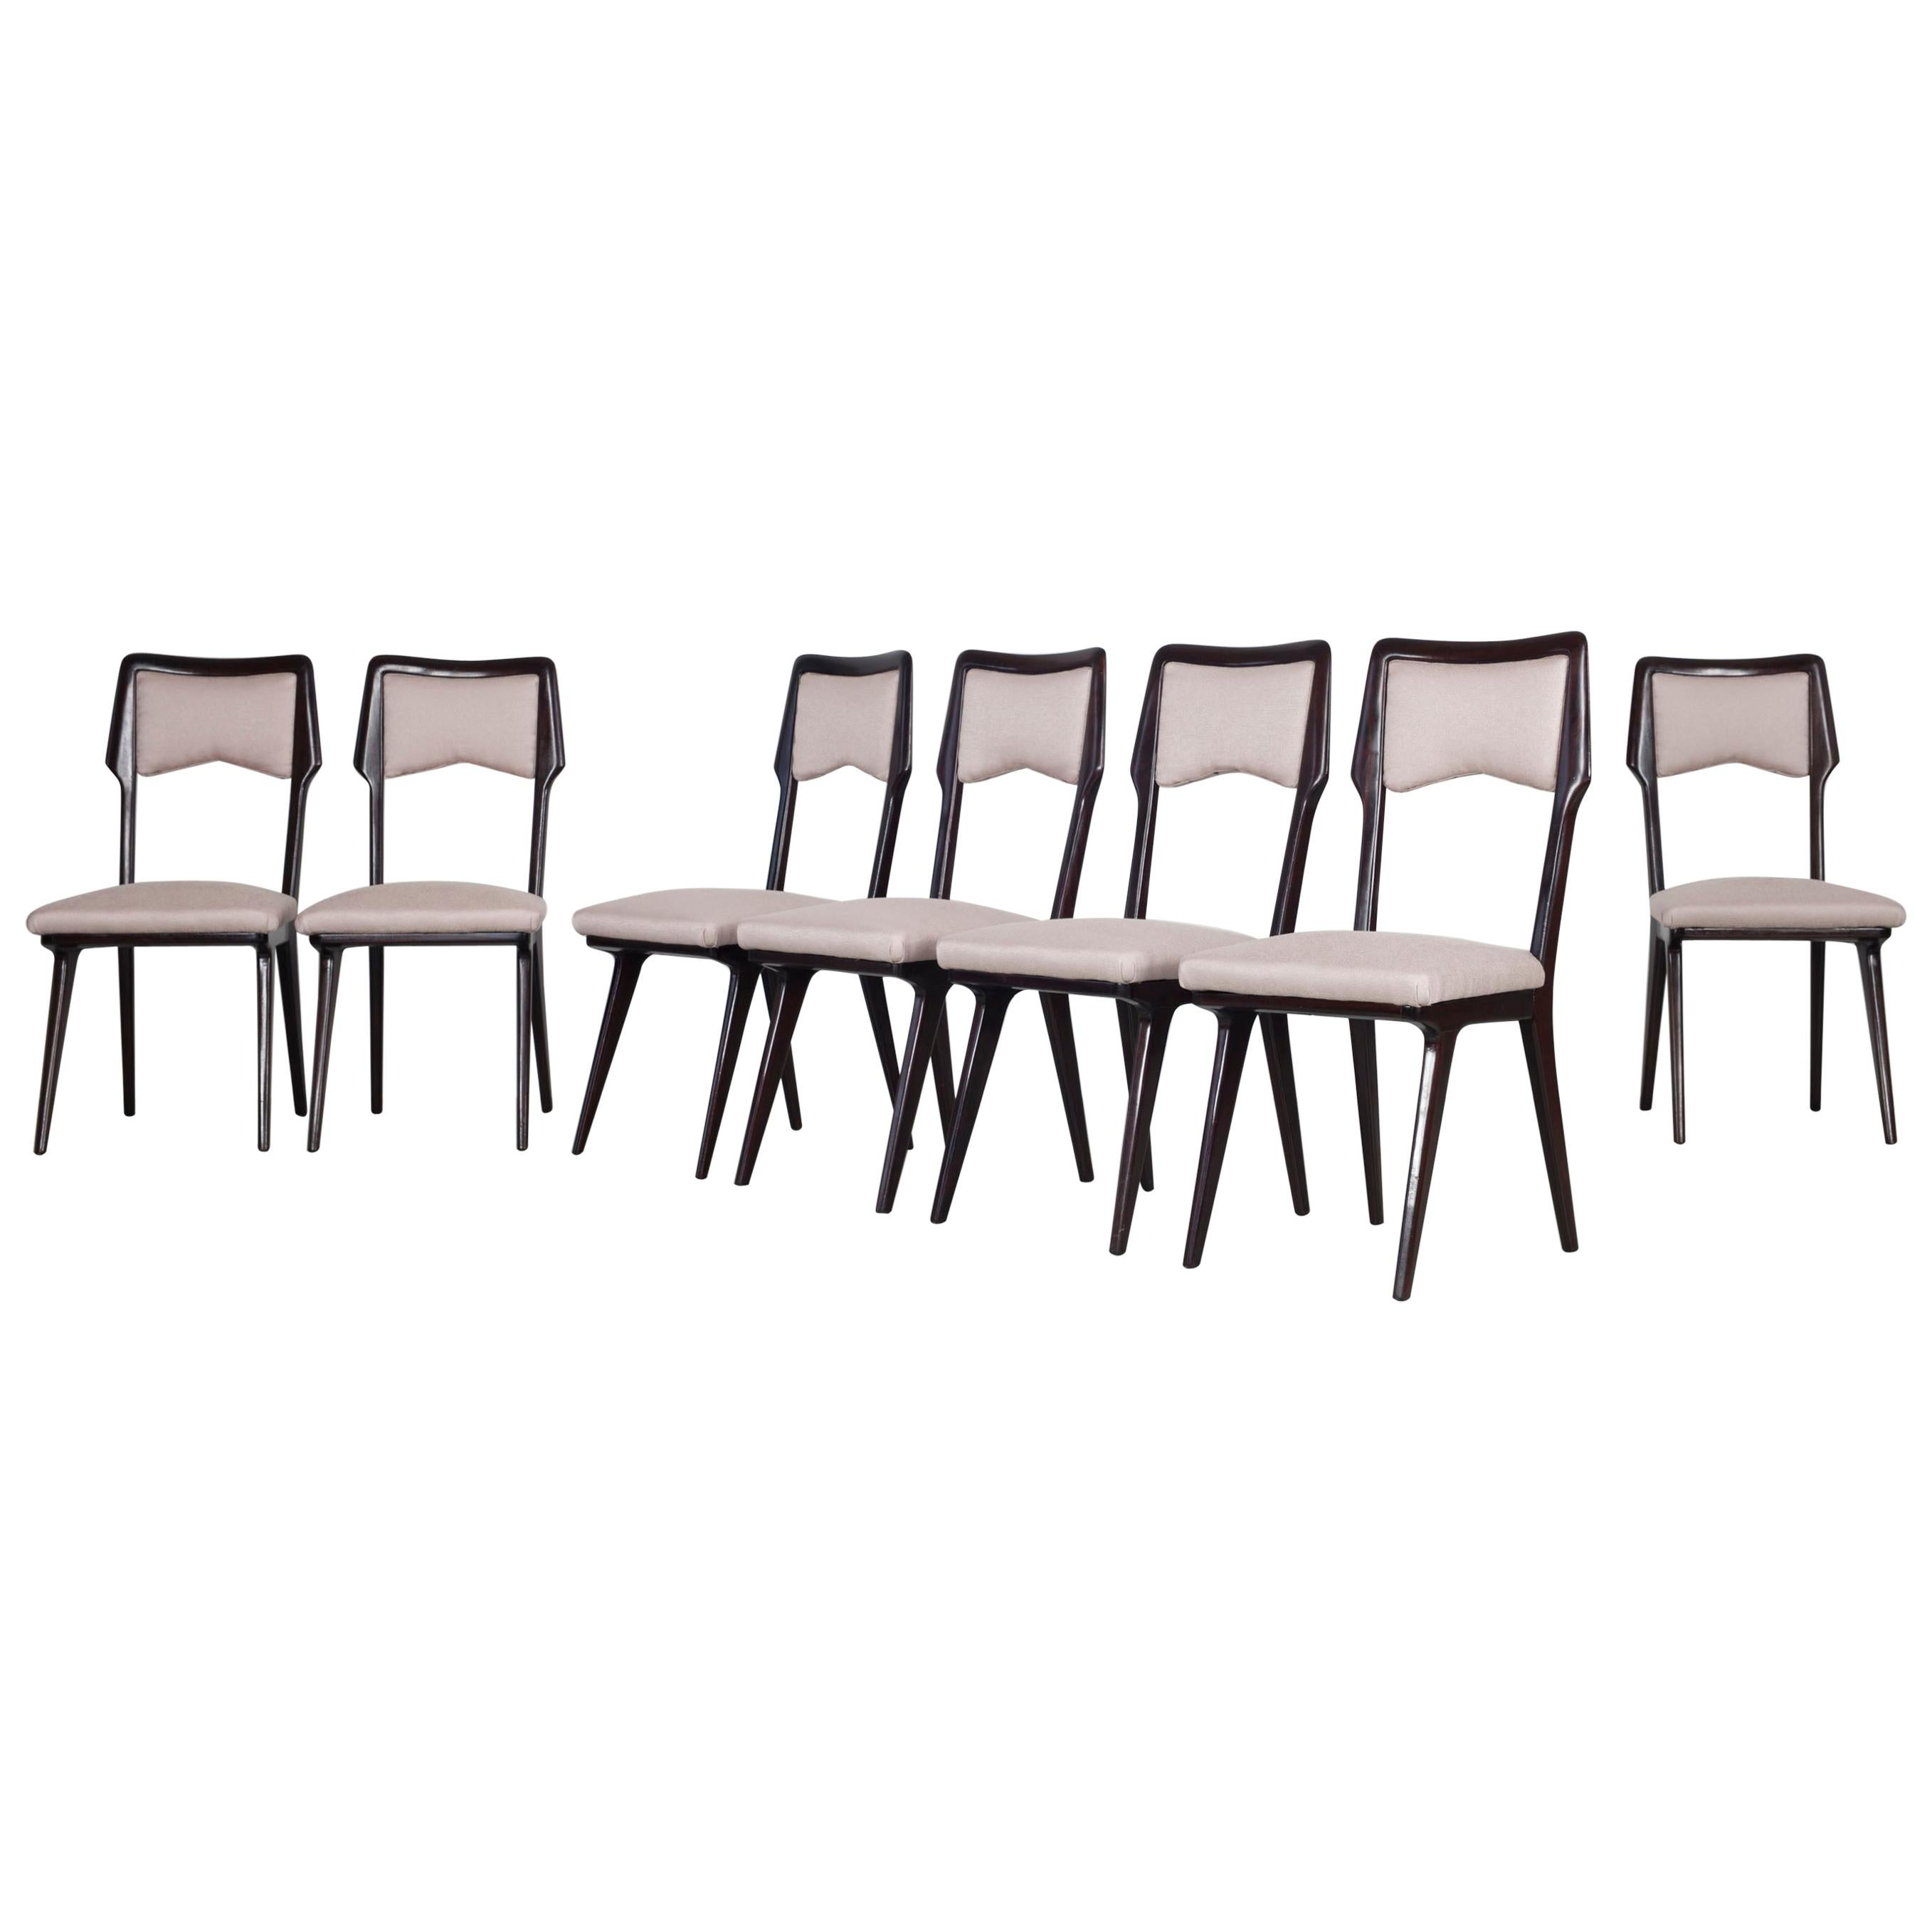 Set of Twelve Dining Chairs, Design by Vittorio Dassi, Italy, 1950s